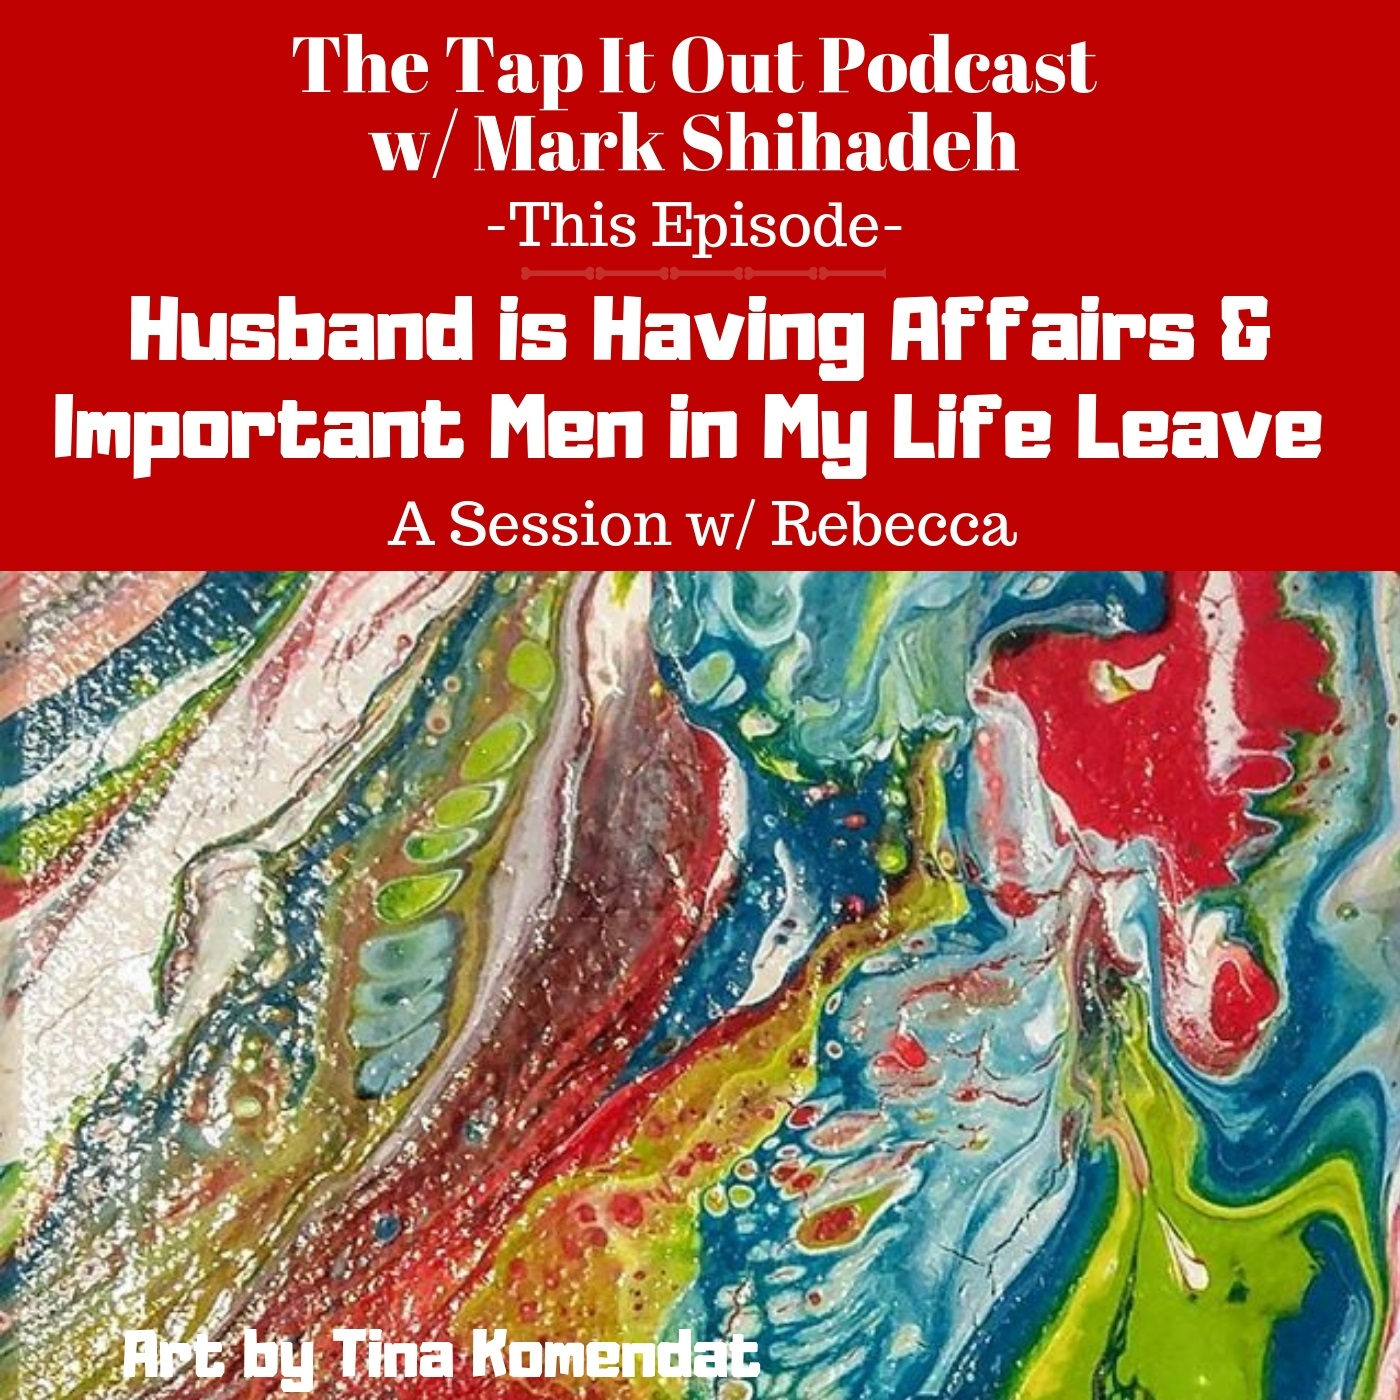 Ep 6: Husband is Having Affairs & Important Men in My Life Leave